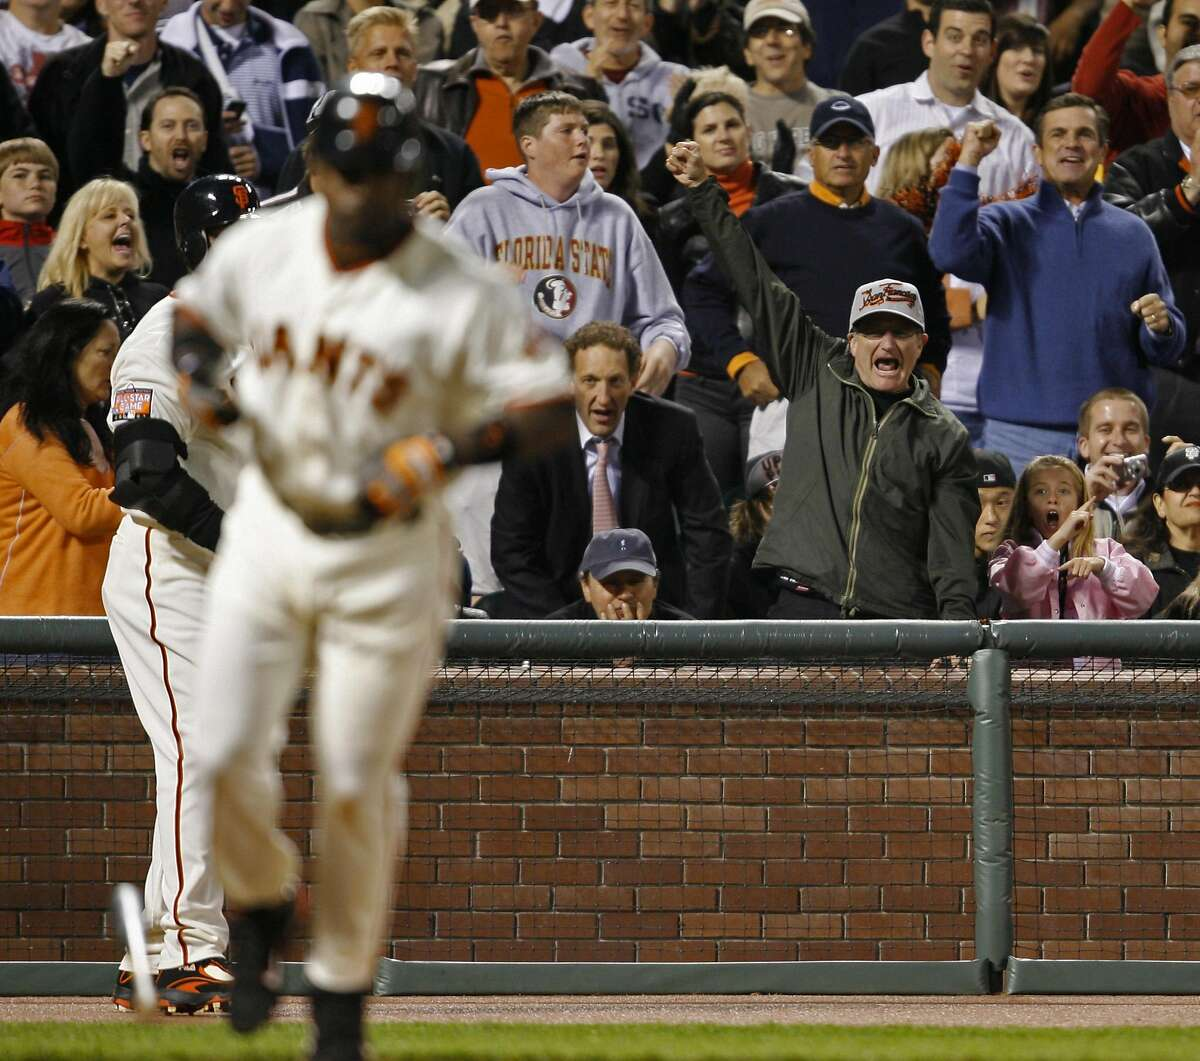 While Yankee fan Billy Crystal (seated with hat) remains quiet Robin Williams emotes as Giants batter Ray Durham is walked by Yankee pitcher Kei Igawa to load the bases in the fifth inning as the Giants play the Yankees at AT&T Park in 2007.